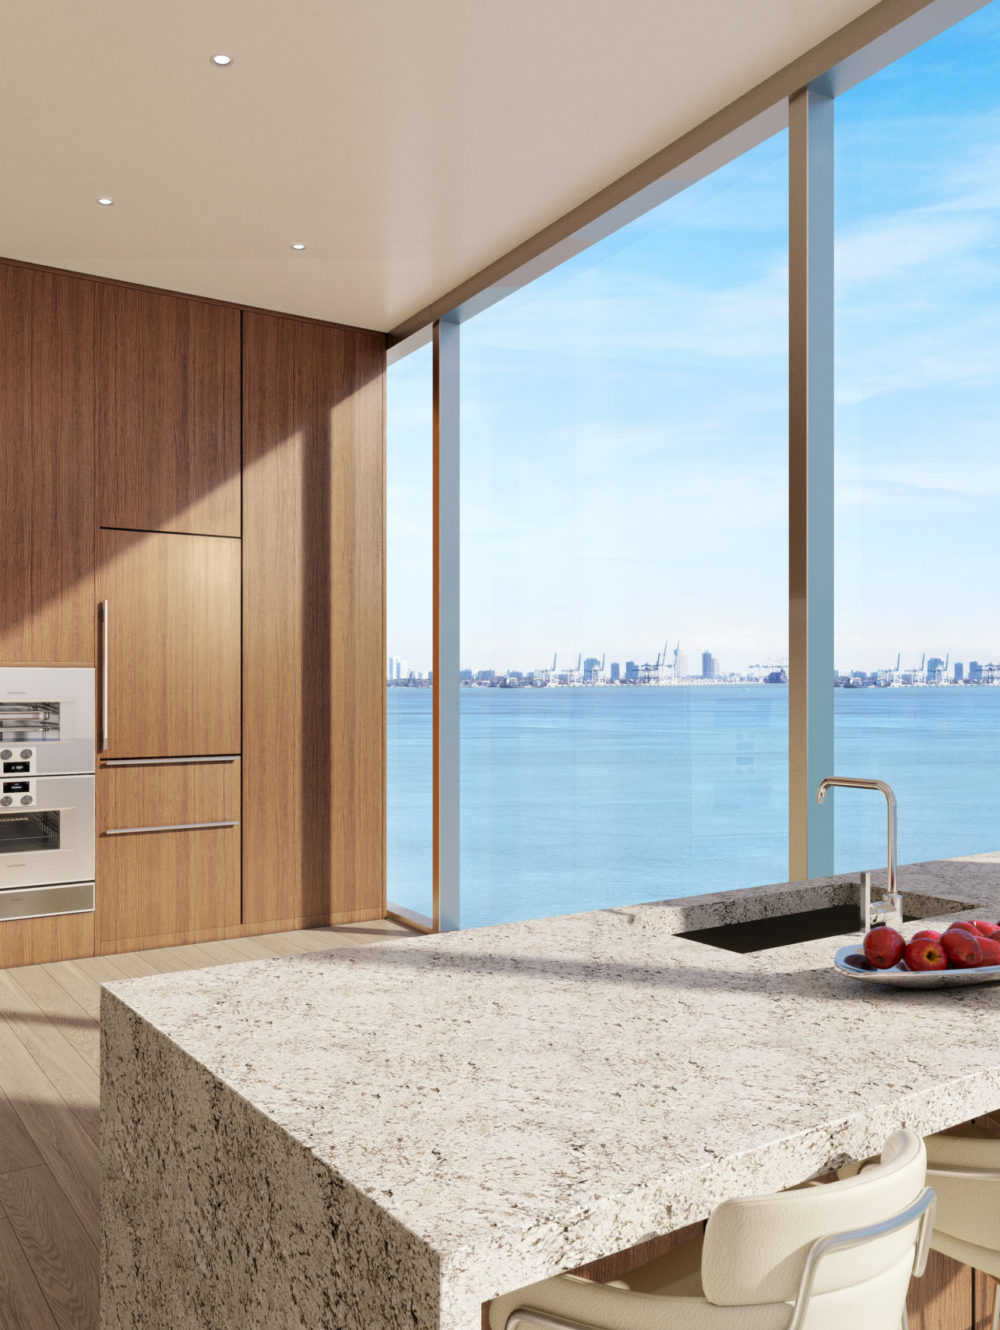 Kitchen with view at Una Residences in Miami. Open kitchen with large island, stone countertops, and wood built-in cabinets.